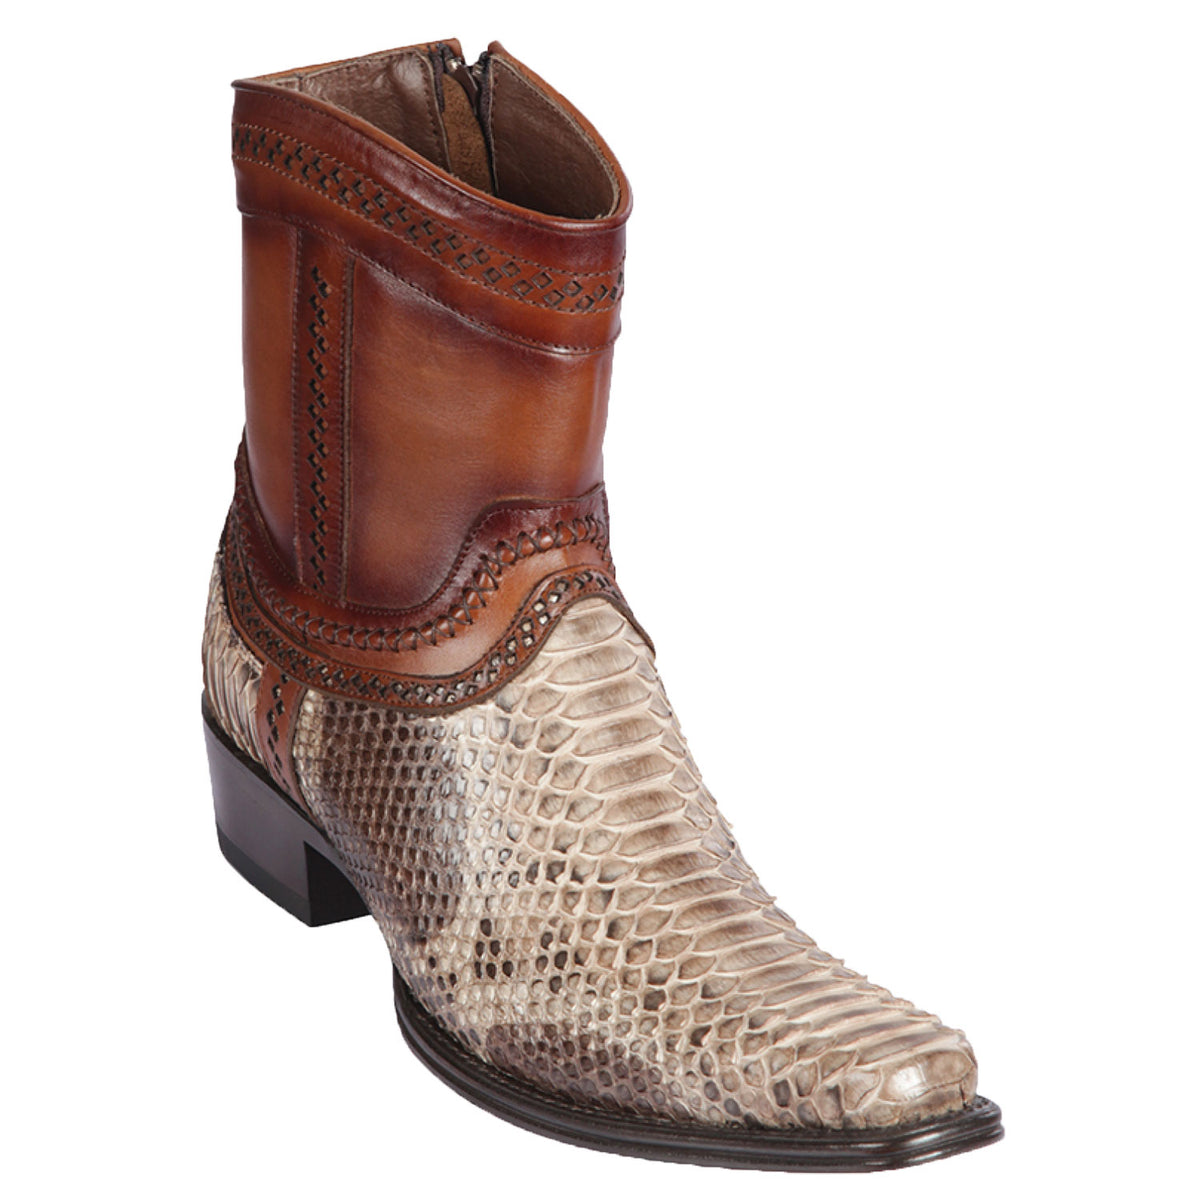 Python Skin Short Boot LAB- 76B57